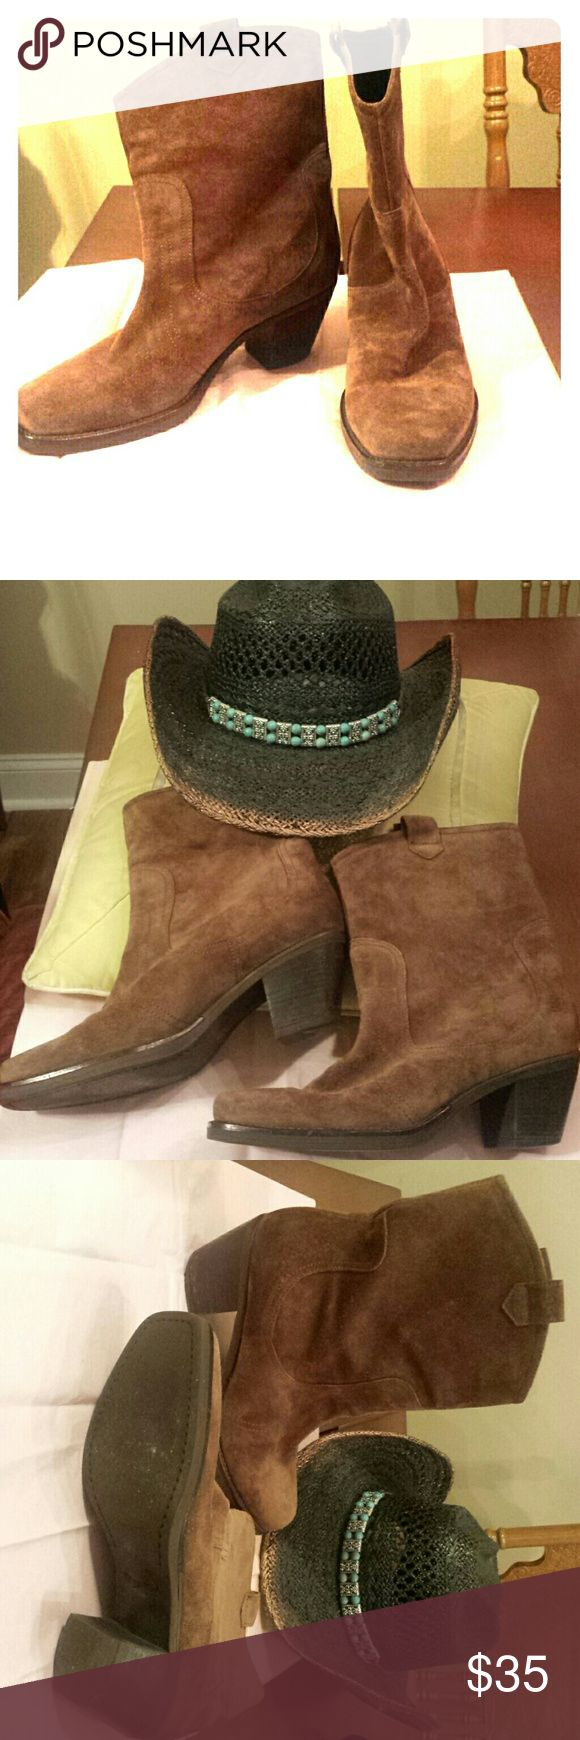 VIA SPIGA WESTERN MID CALF BROWN SUEDE BOOTS WOMENS VIA SPIGA WESTERN MID CALF BROWN SUEDE BOOTS SIZE 8.5 used Via Spiga Shoes Ankle Boots & Booties